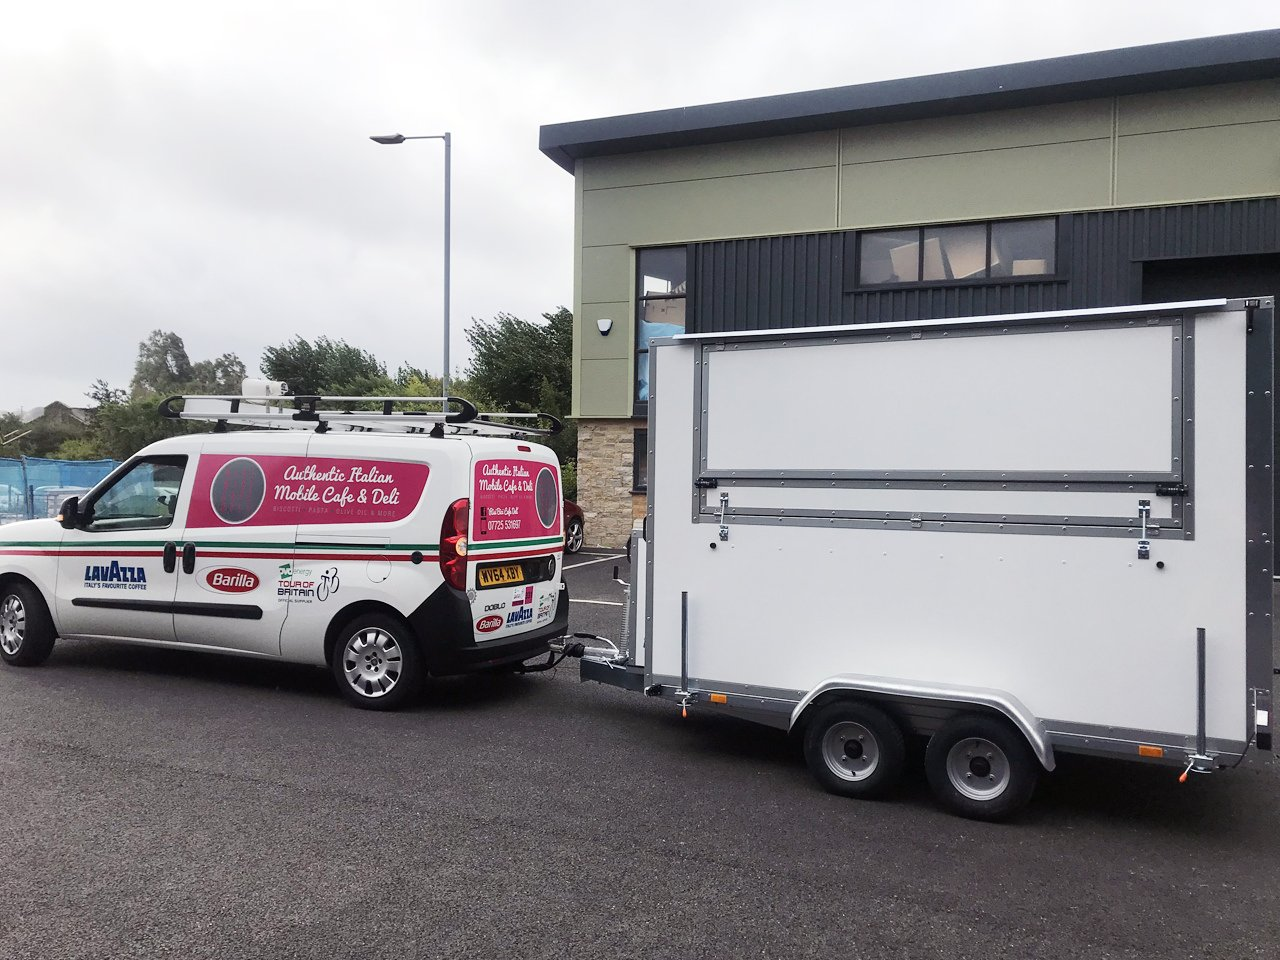 towing braked catering trailer